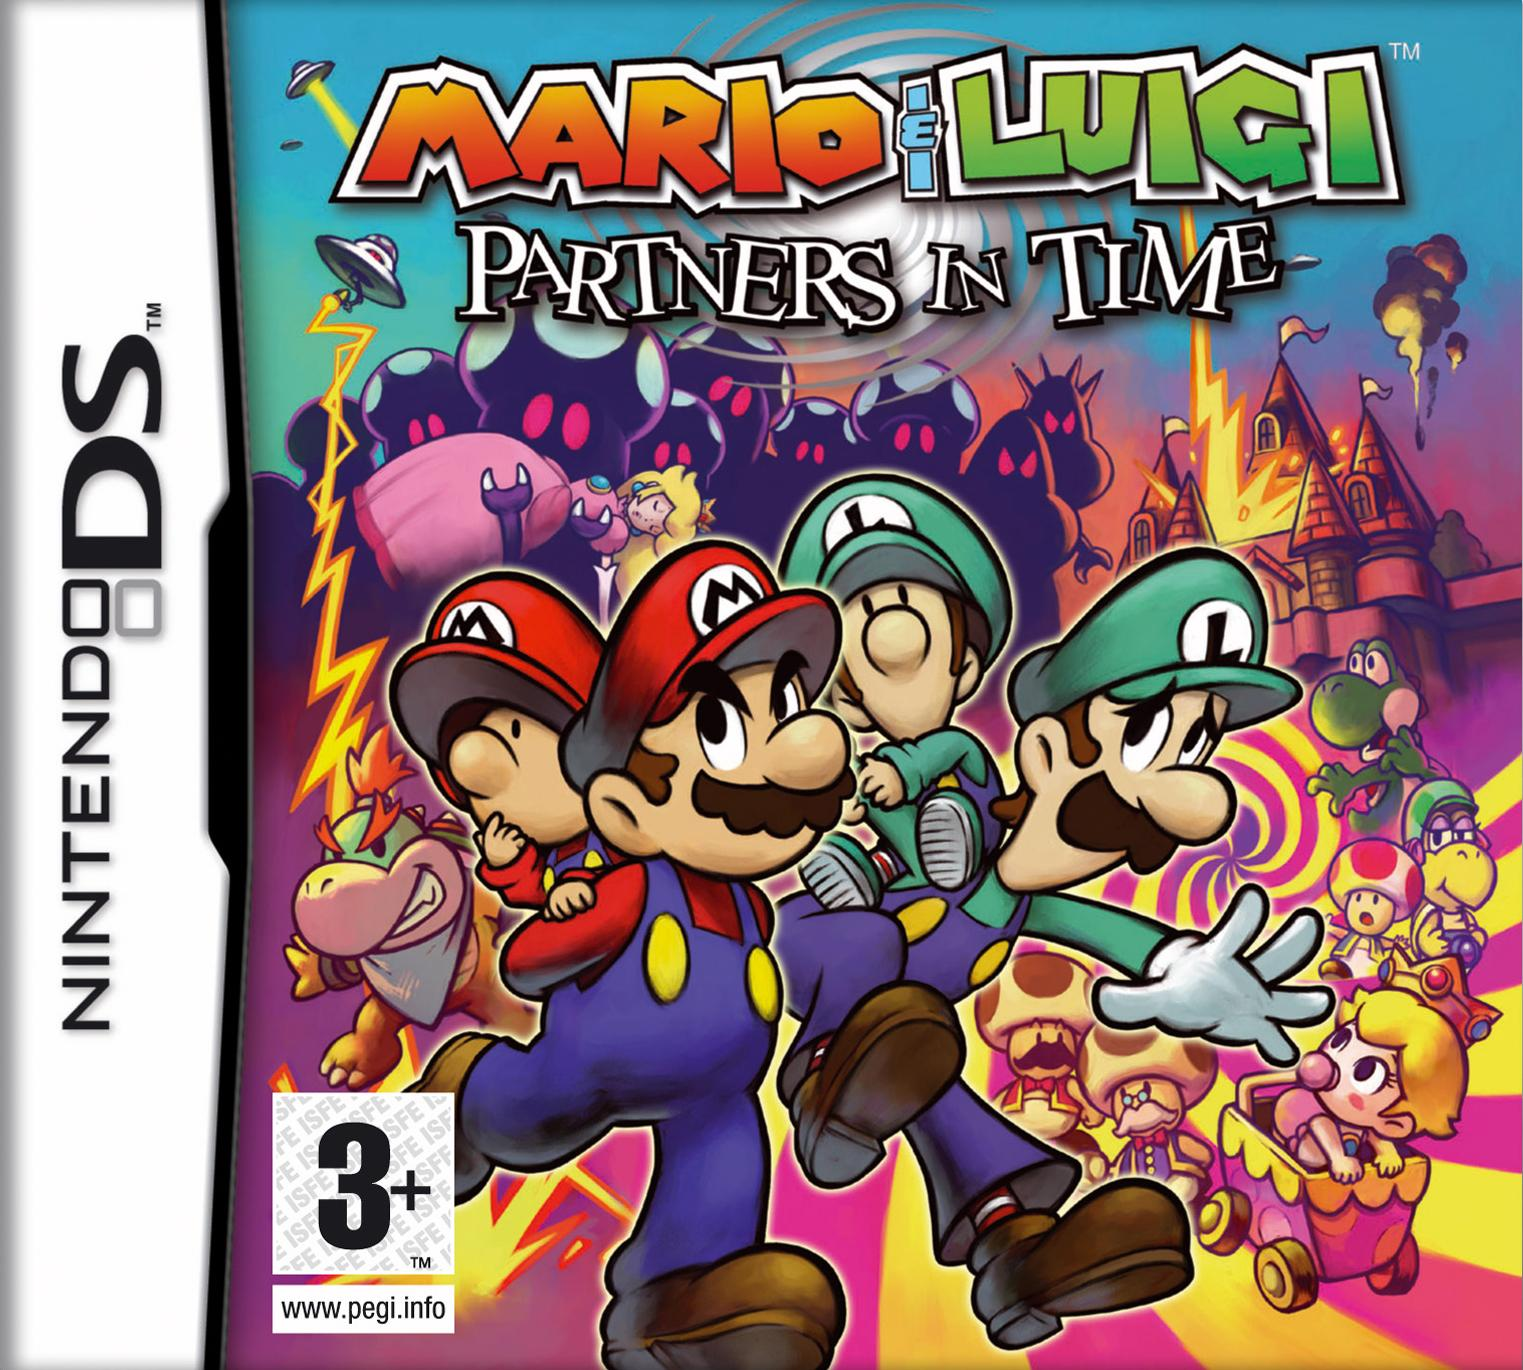 mario und luigi partners in time